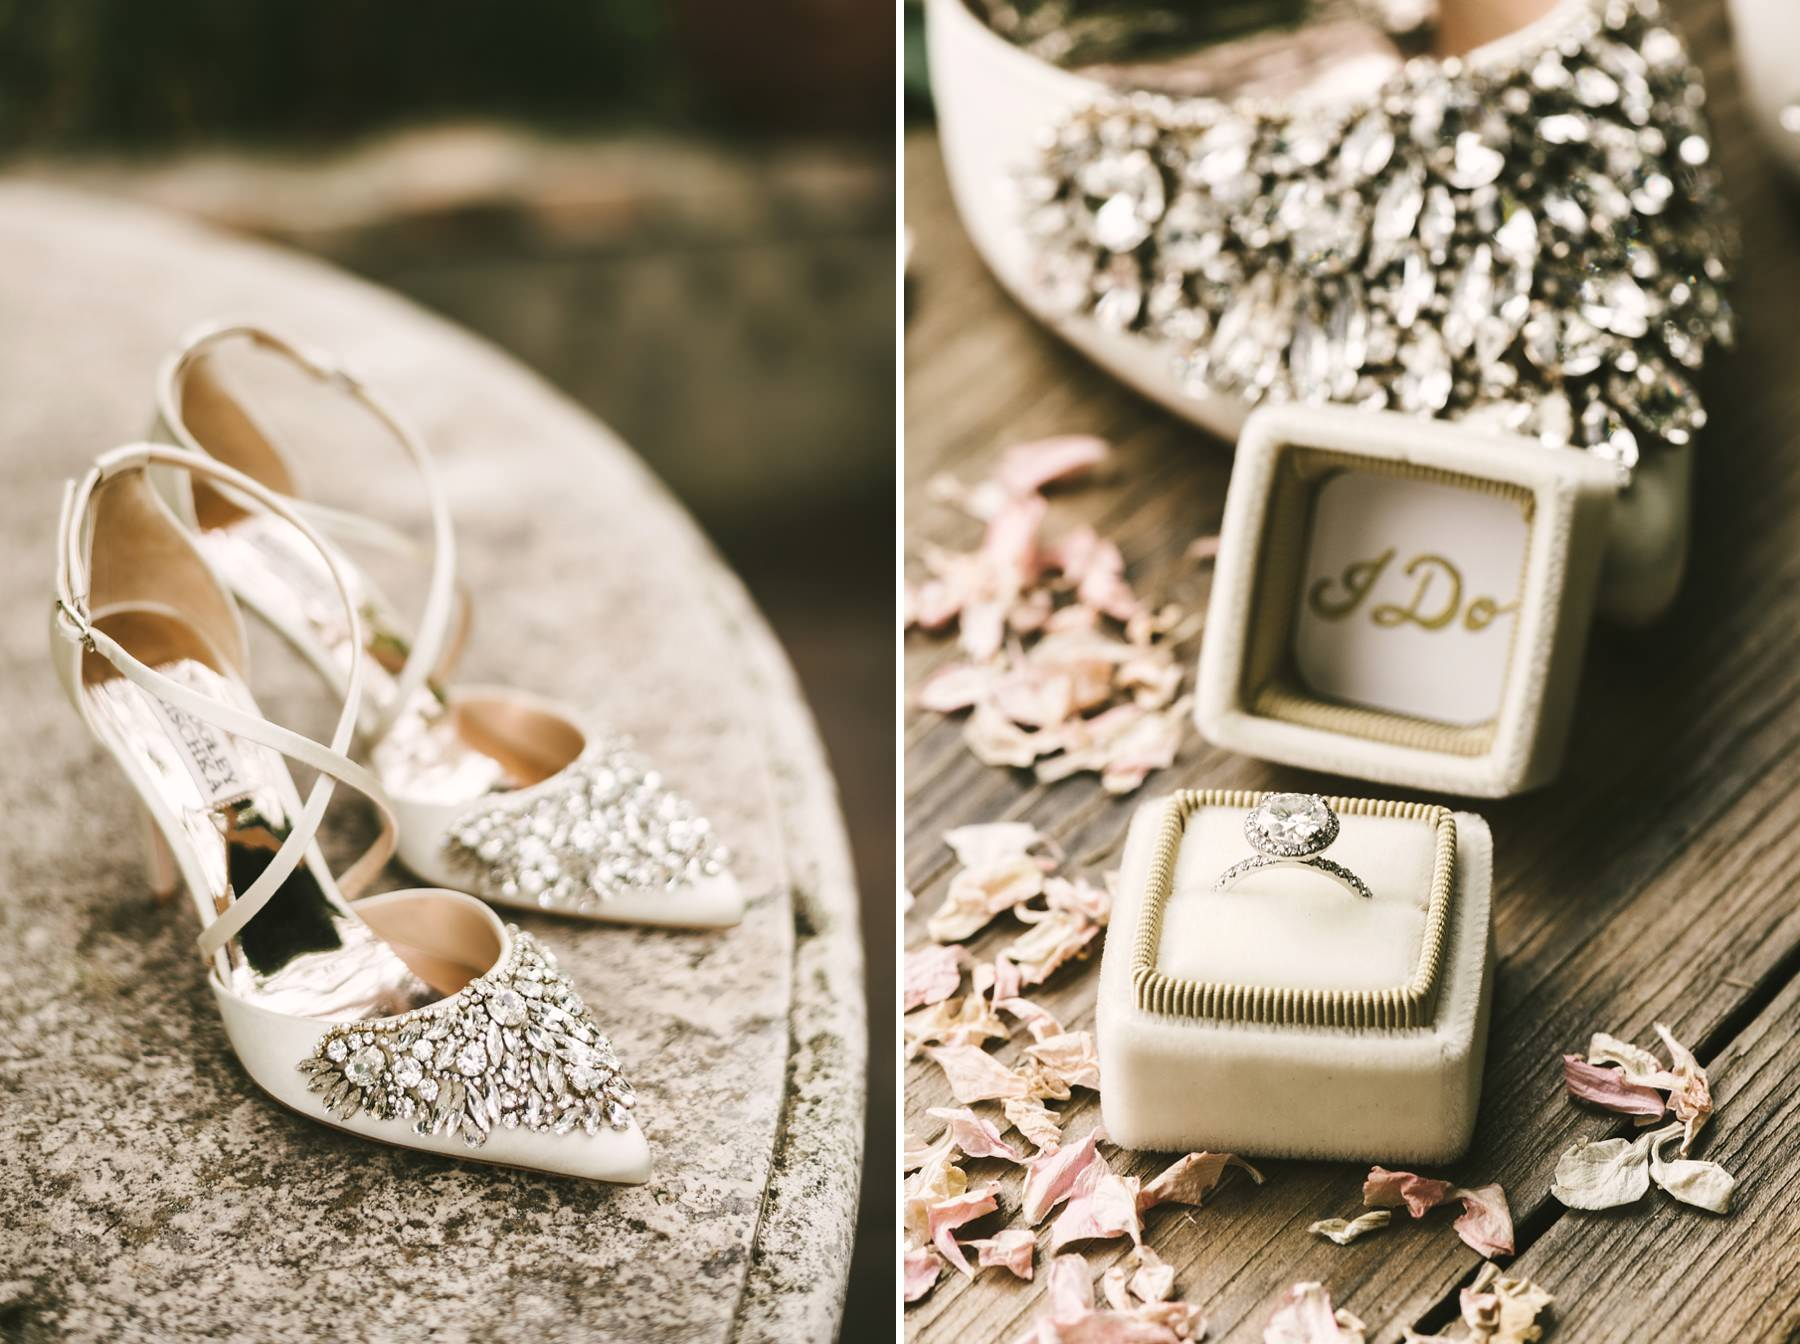 Elegant and lovely bride accessories